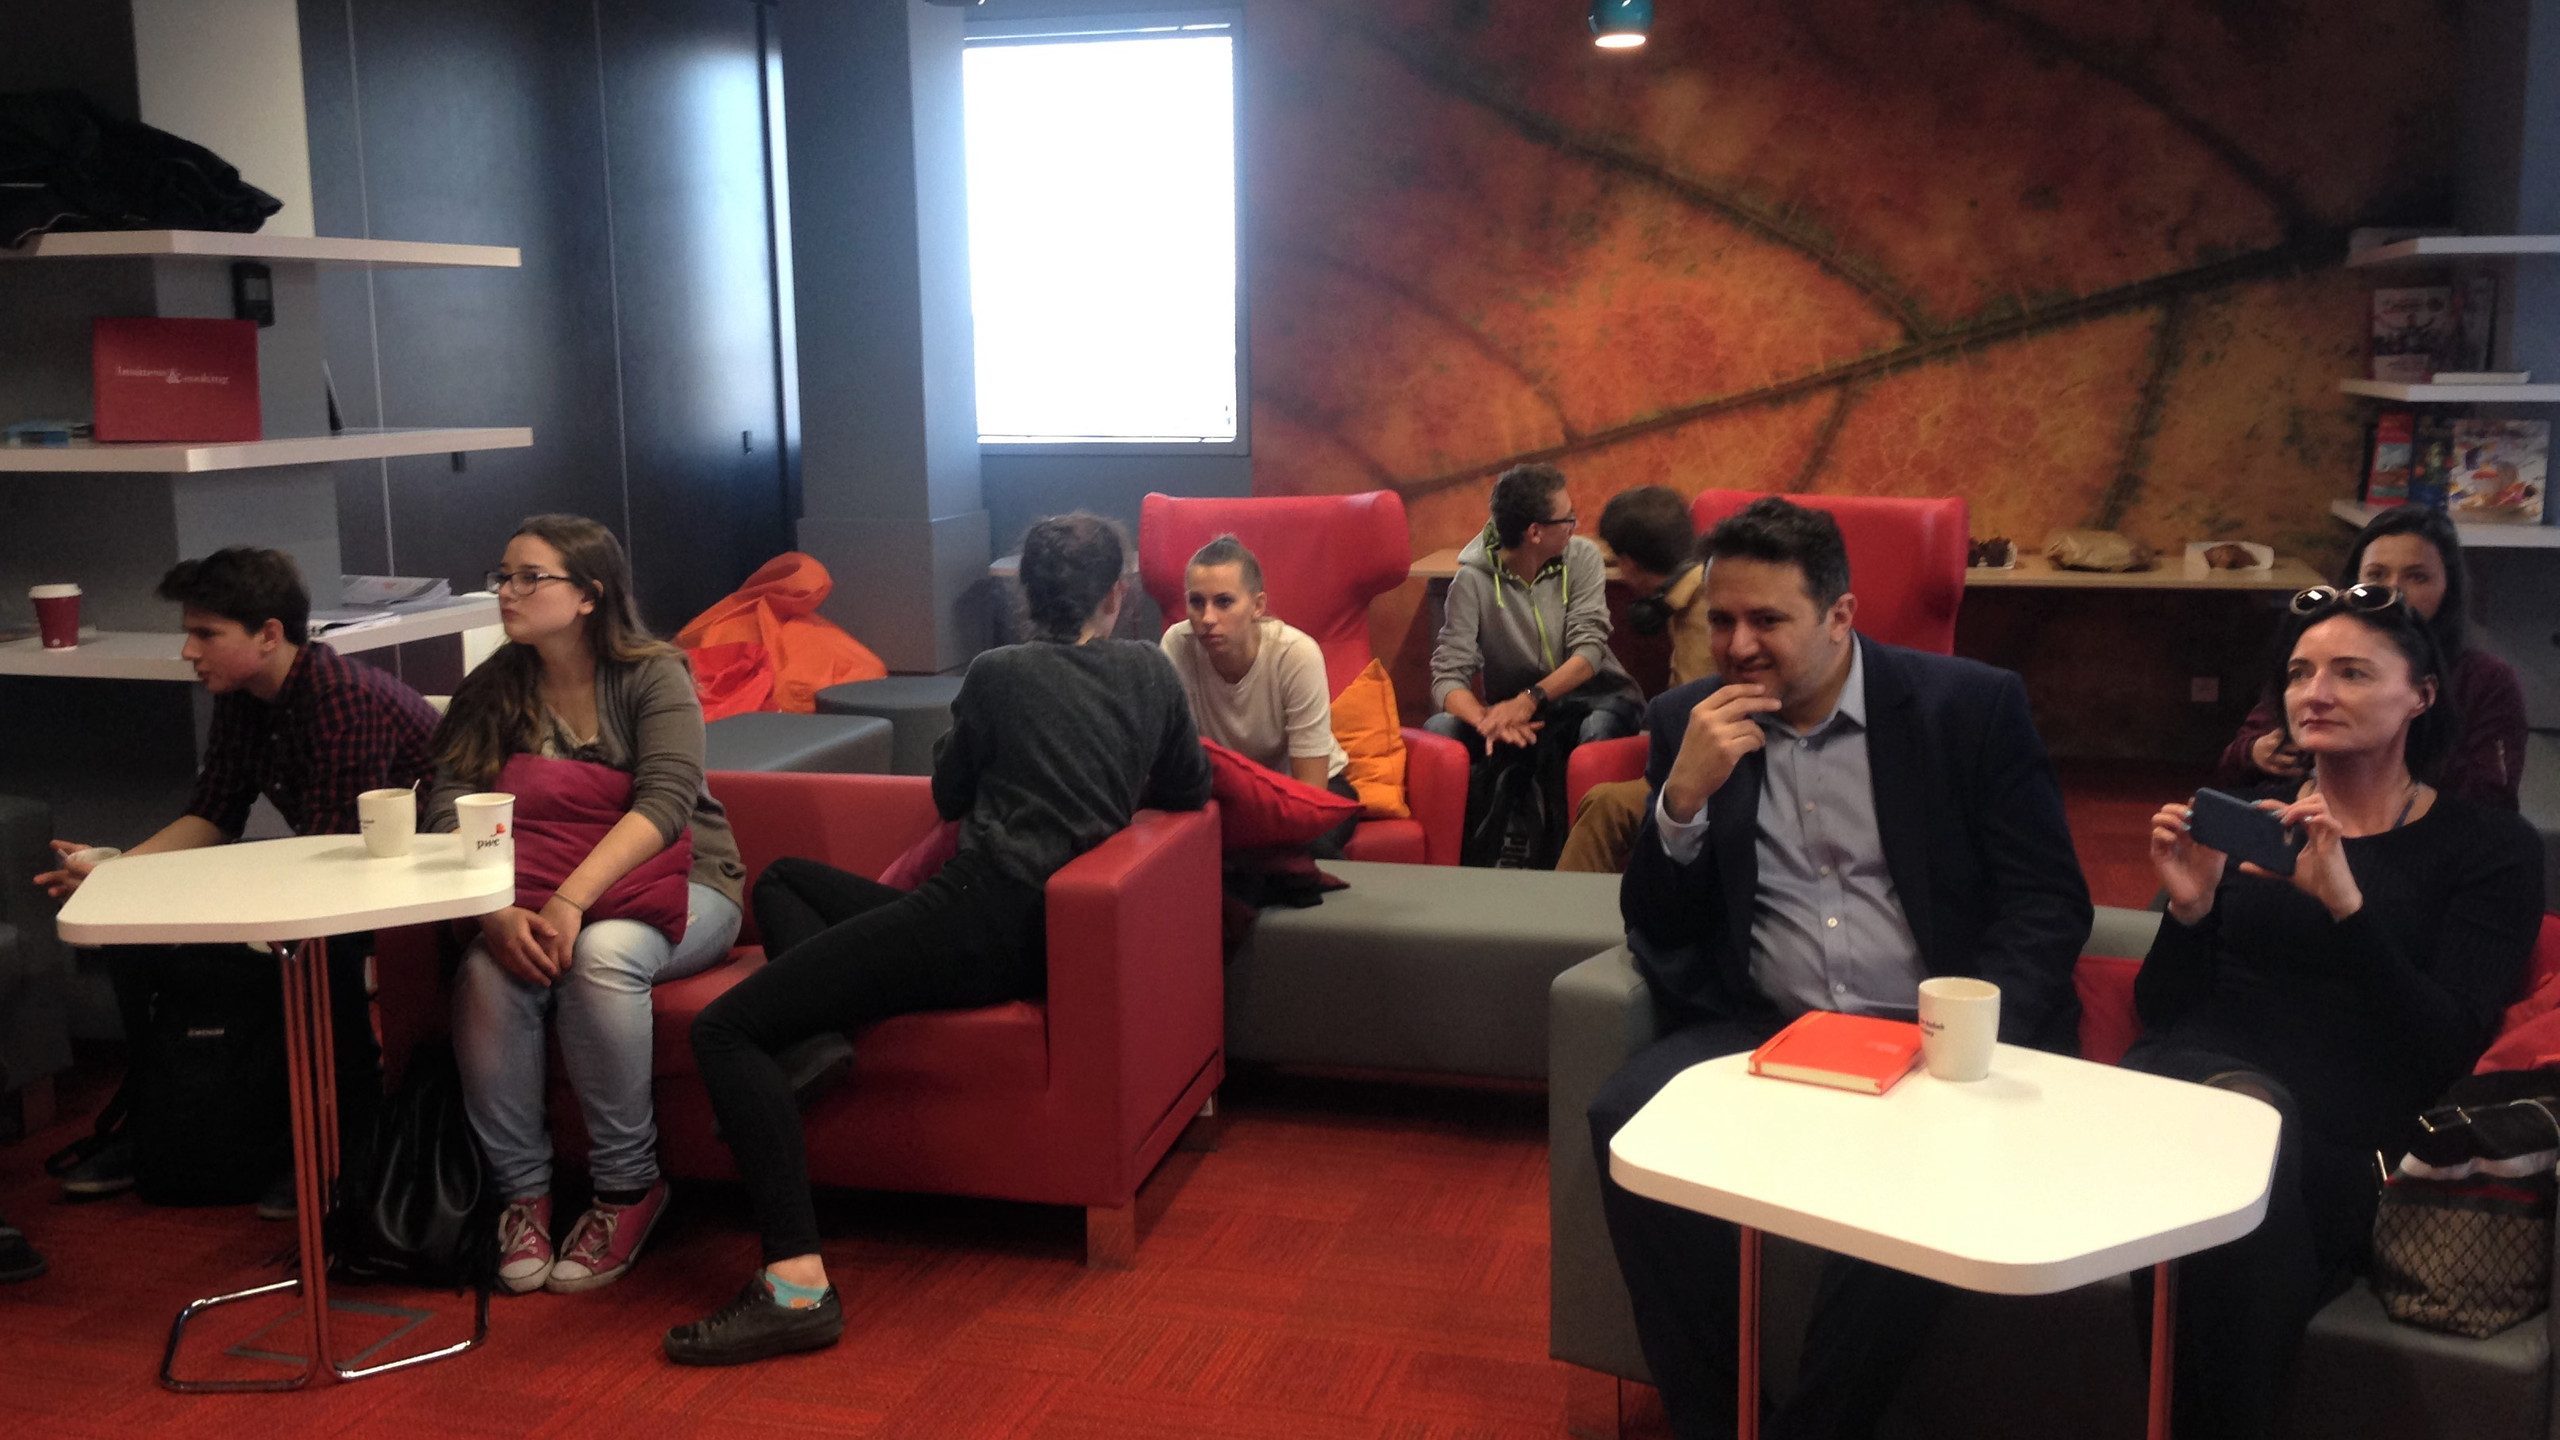 Teens Matter monthly meeting with special guest Jan Krzysztof Bielecki. 04.04.17, PwC, Warsaw